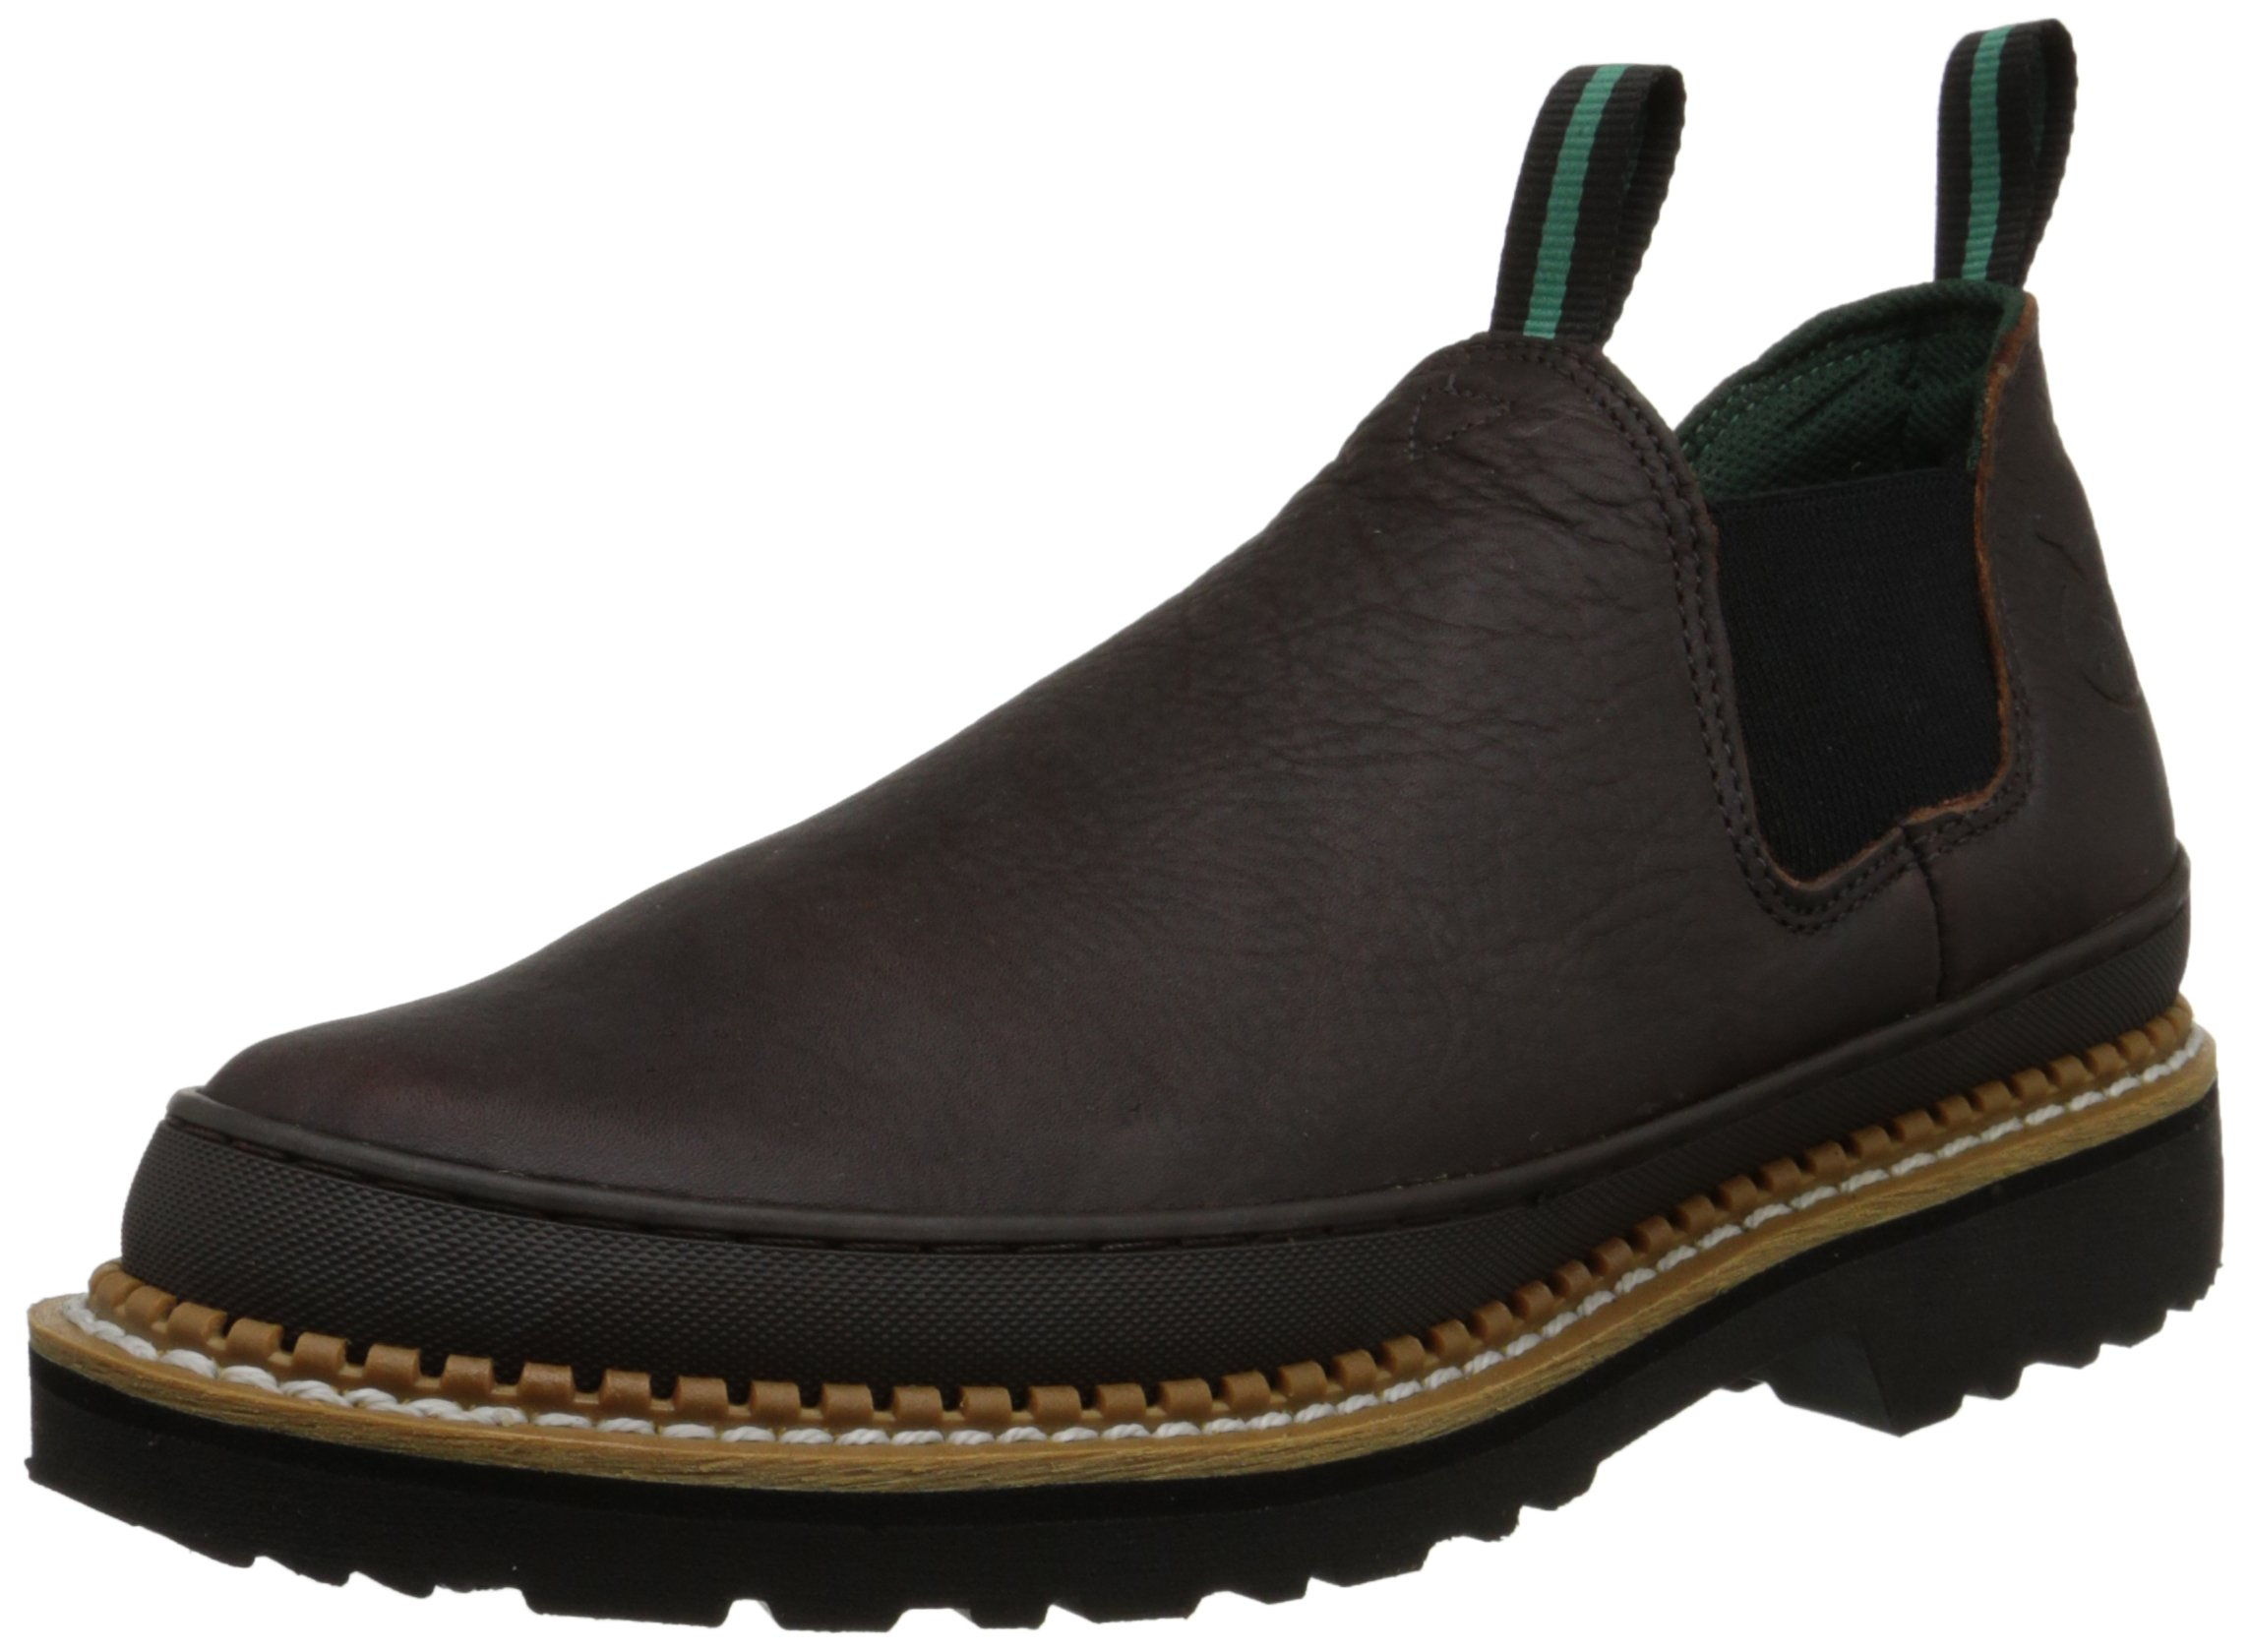 Georgia Giant Men's Romeo Slip-On Work Shoe,Brown,9.5 W